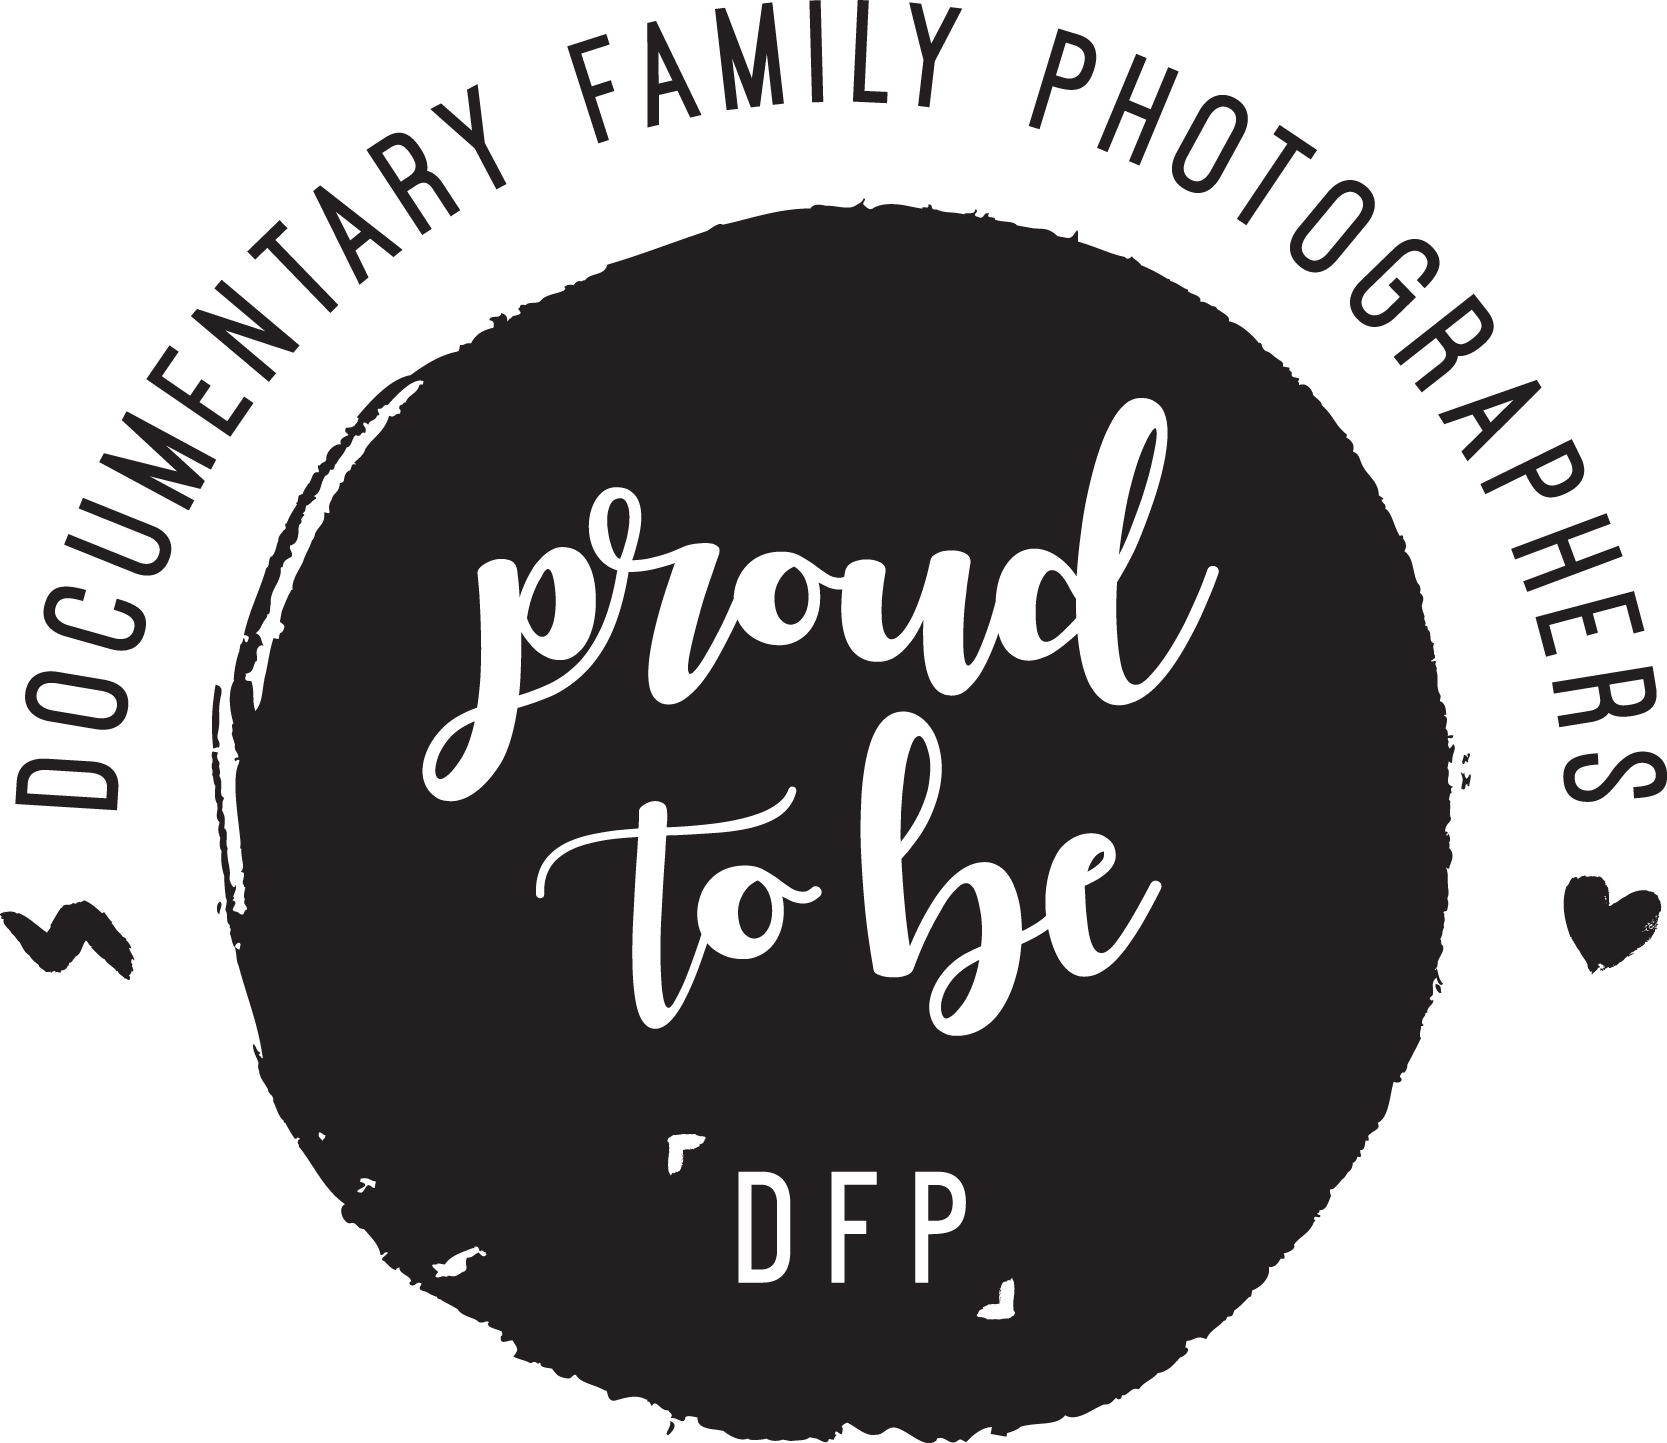 Documentary Family Photographer